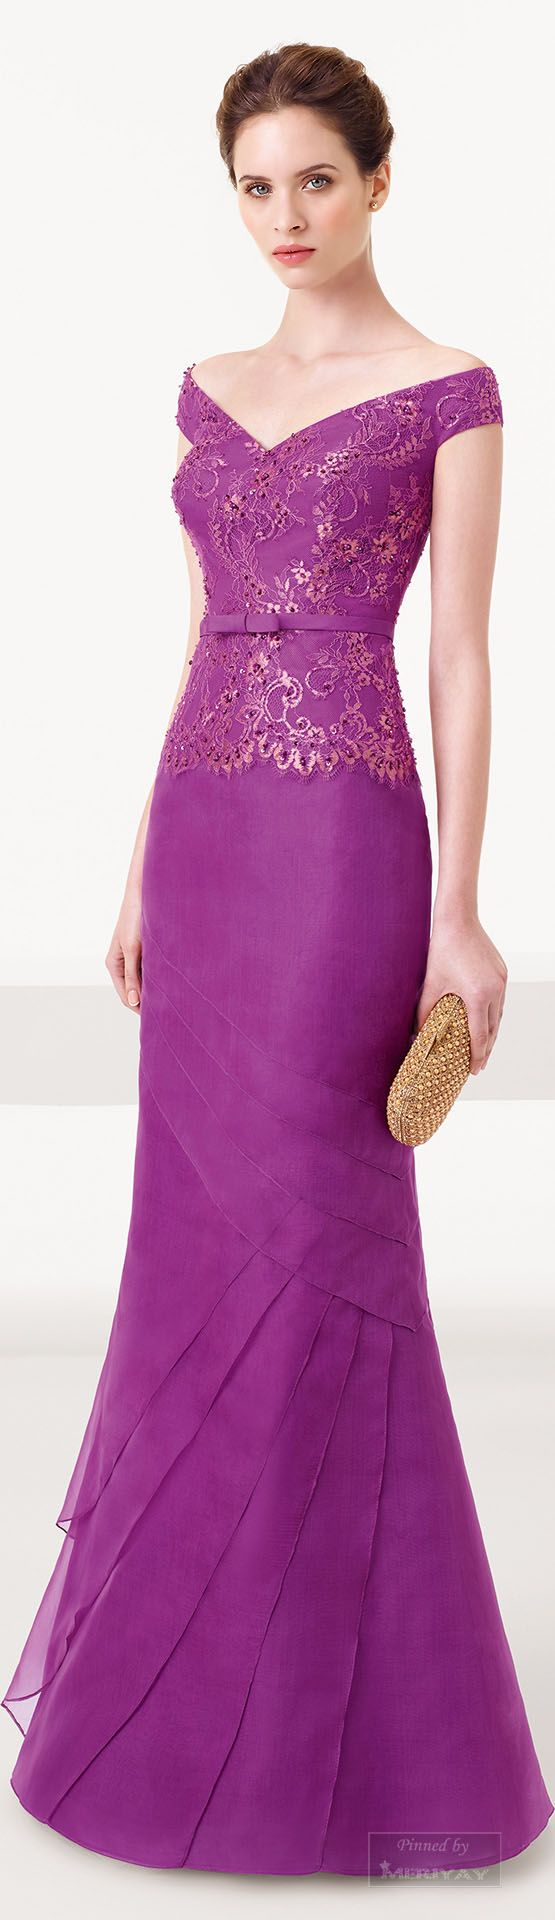 Aire Barcelona Evening Gown, Violet, 2015.                                                                                                                                                      Más